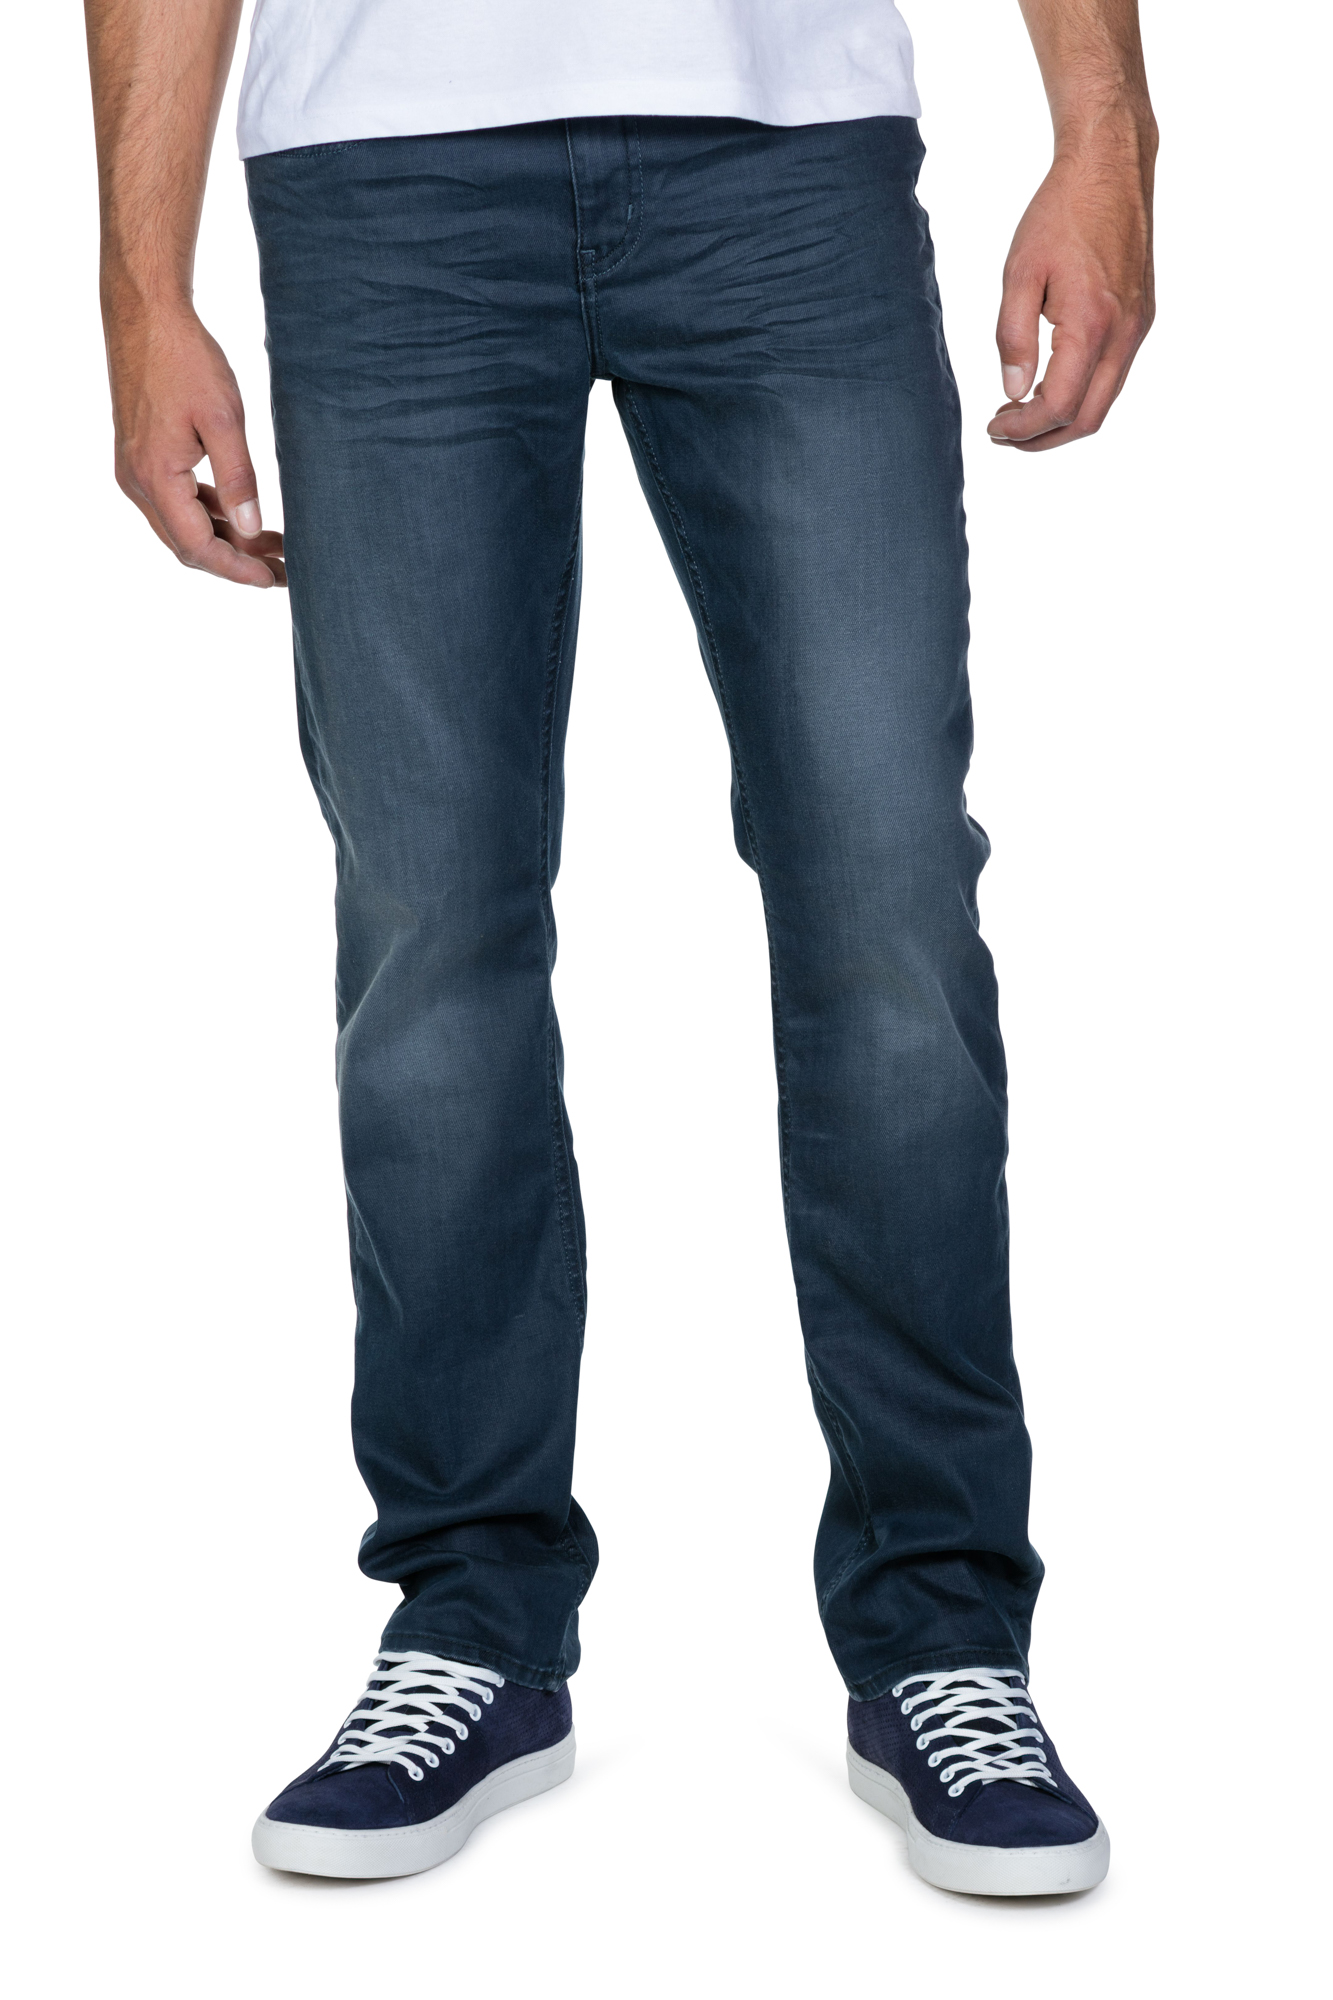 jeans_homme_redman_noah_denim_mock_medium_grey_1.jpg